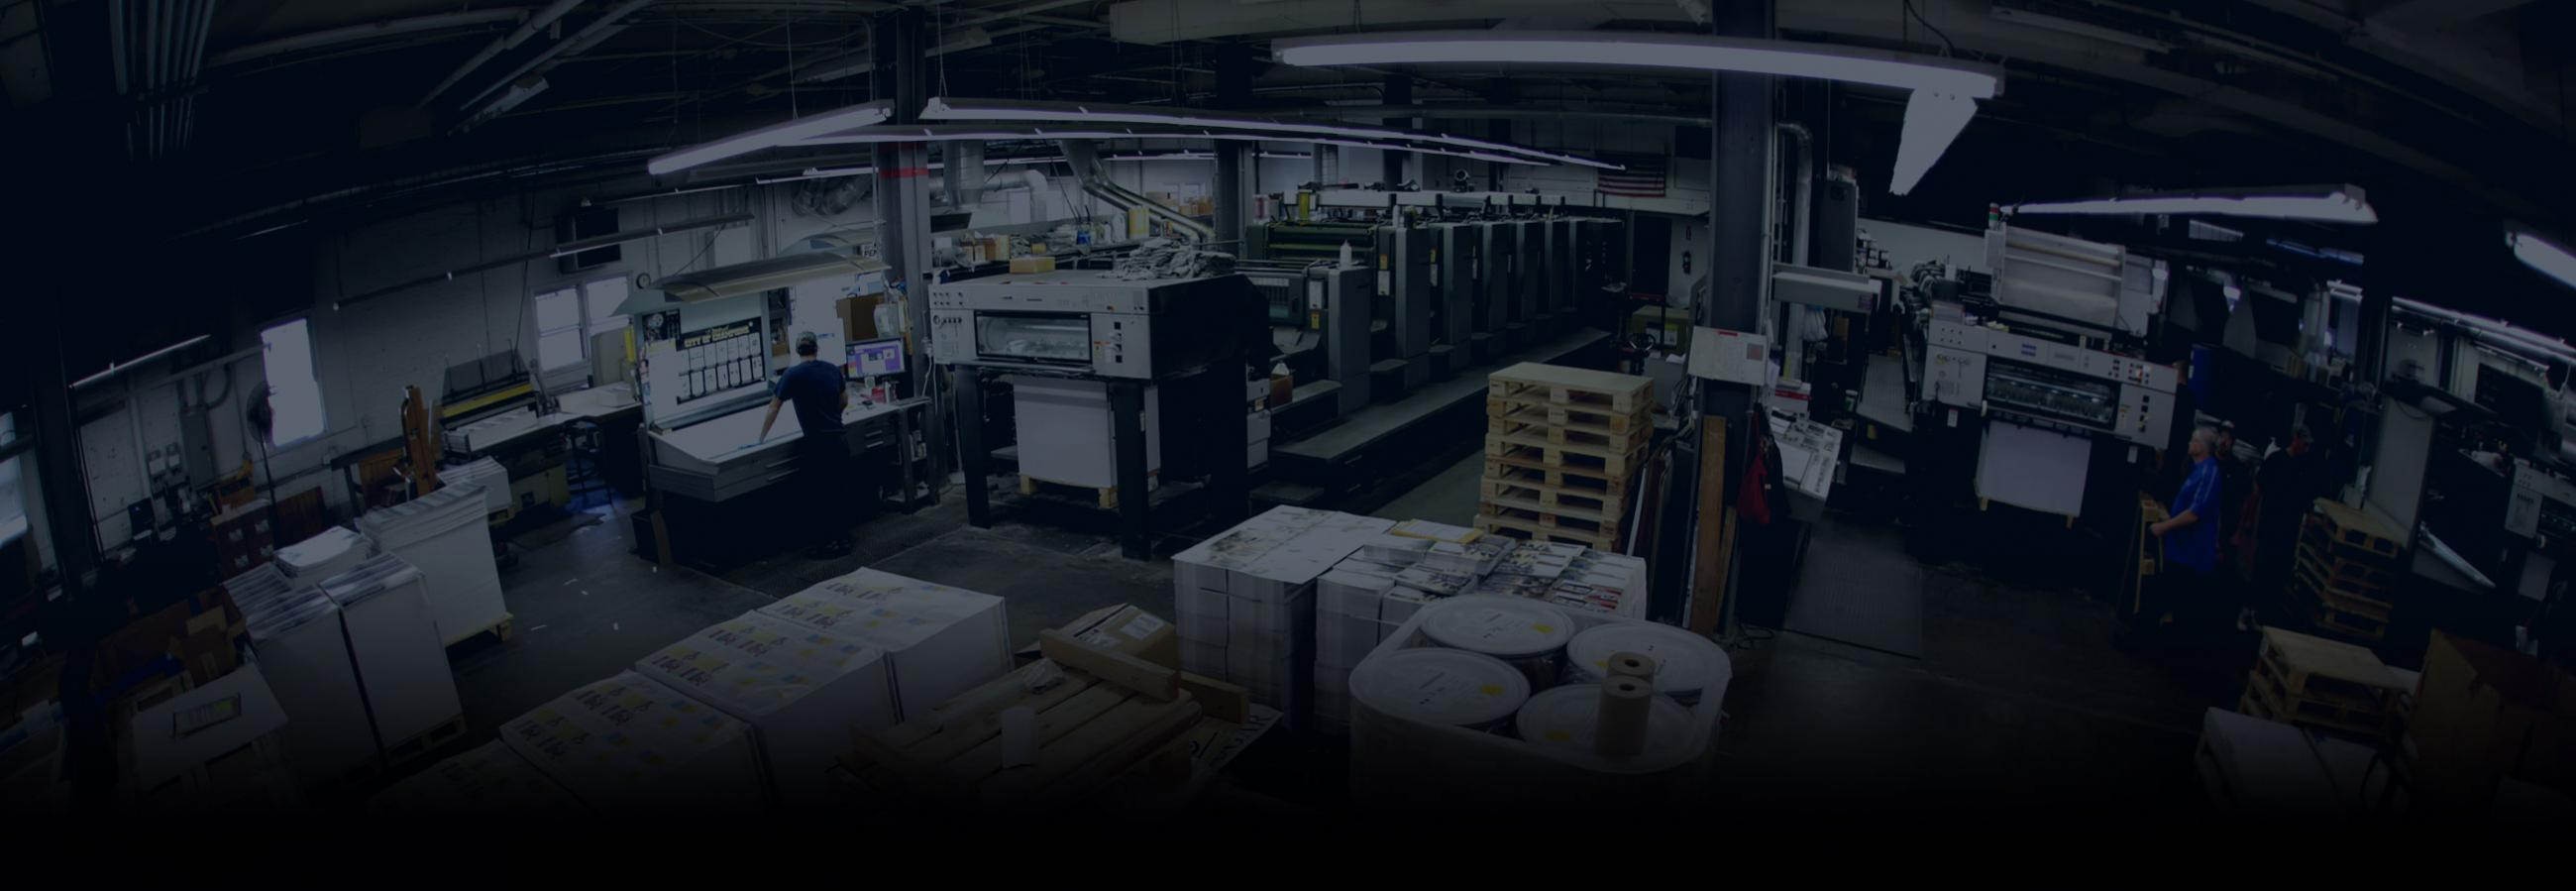 Commercial Printing Capabilities Pittsburgh